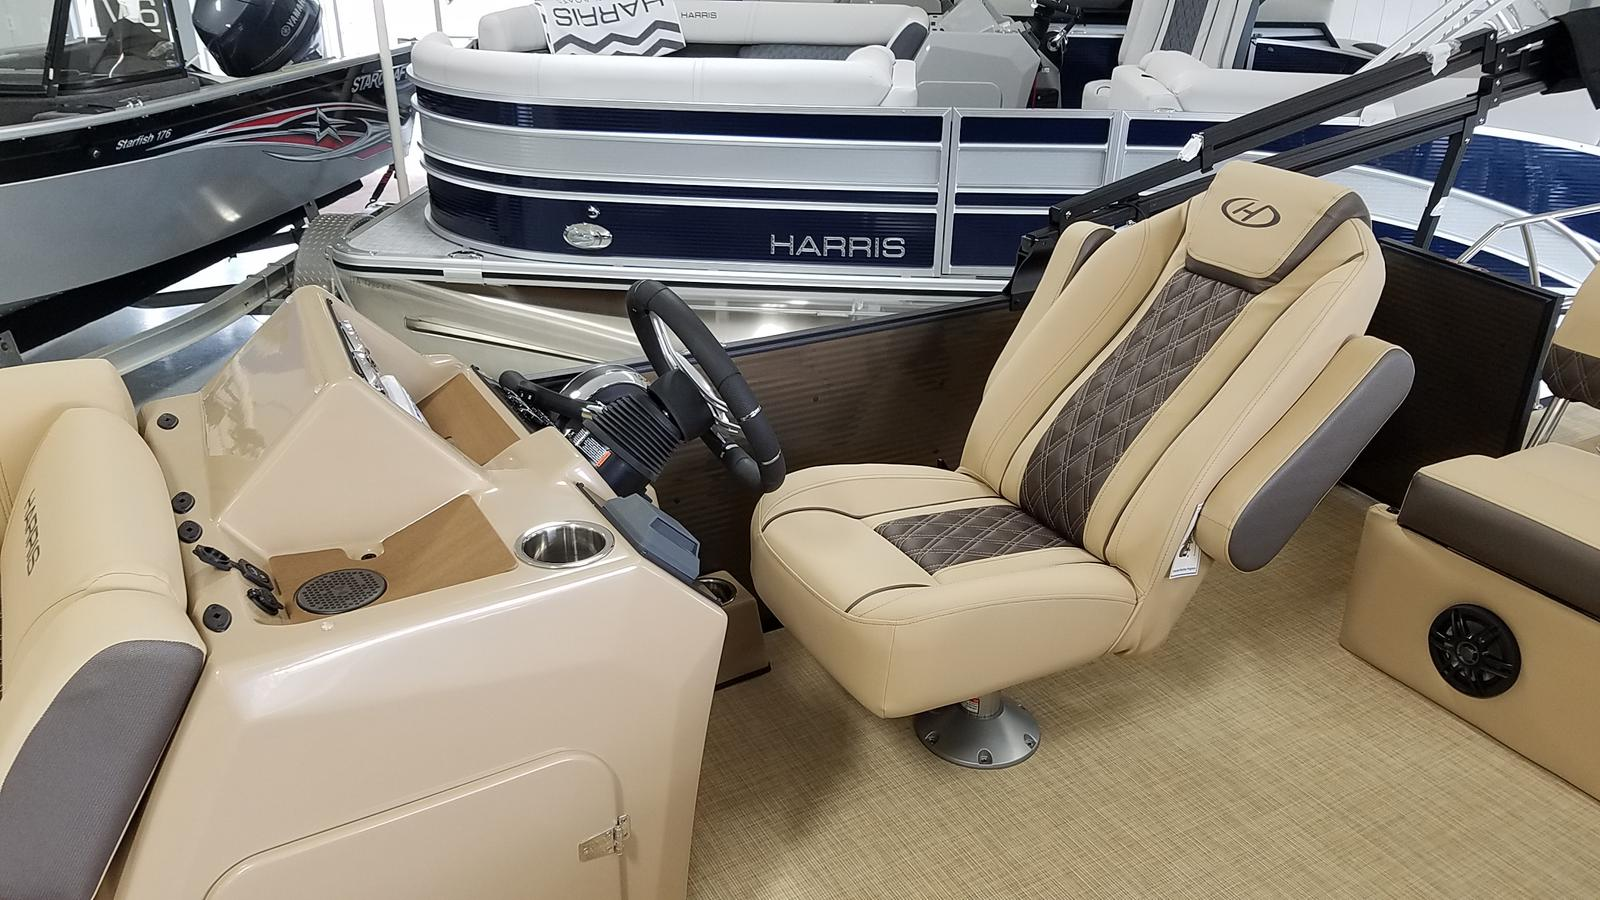 2021 Harris boat for sale, model of the boat is Sunliner 250 & Image # 4 of 17